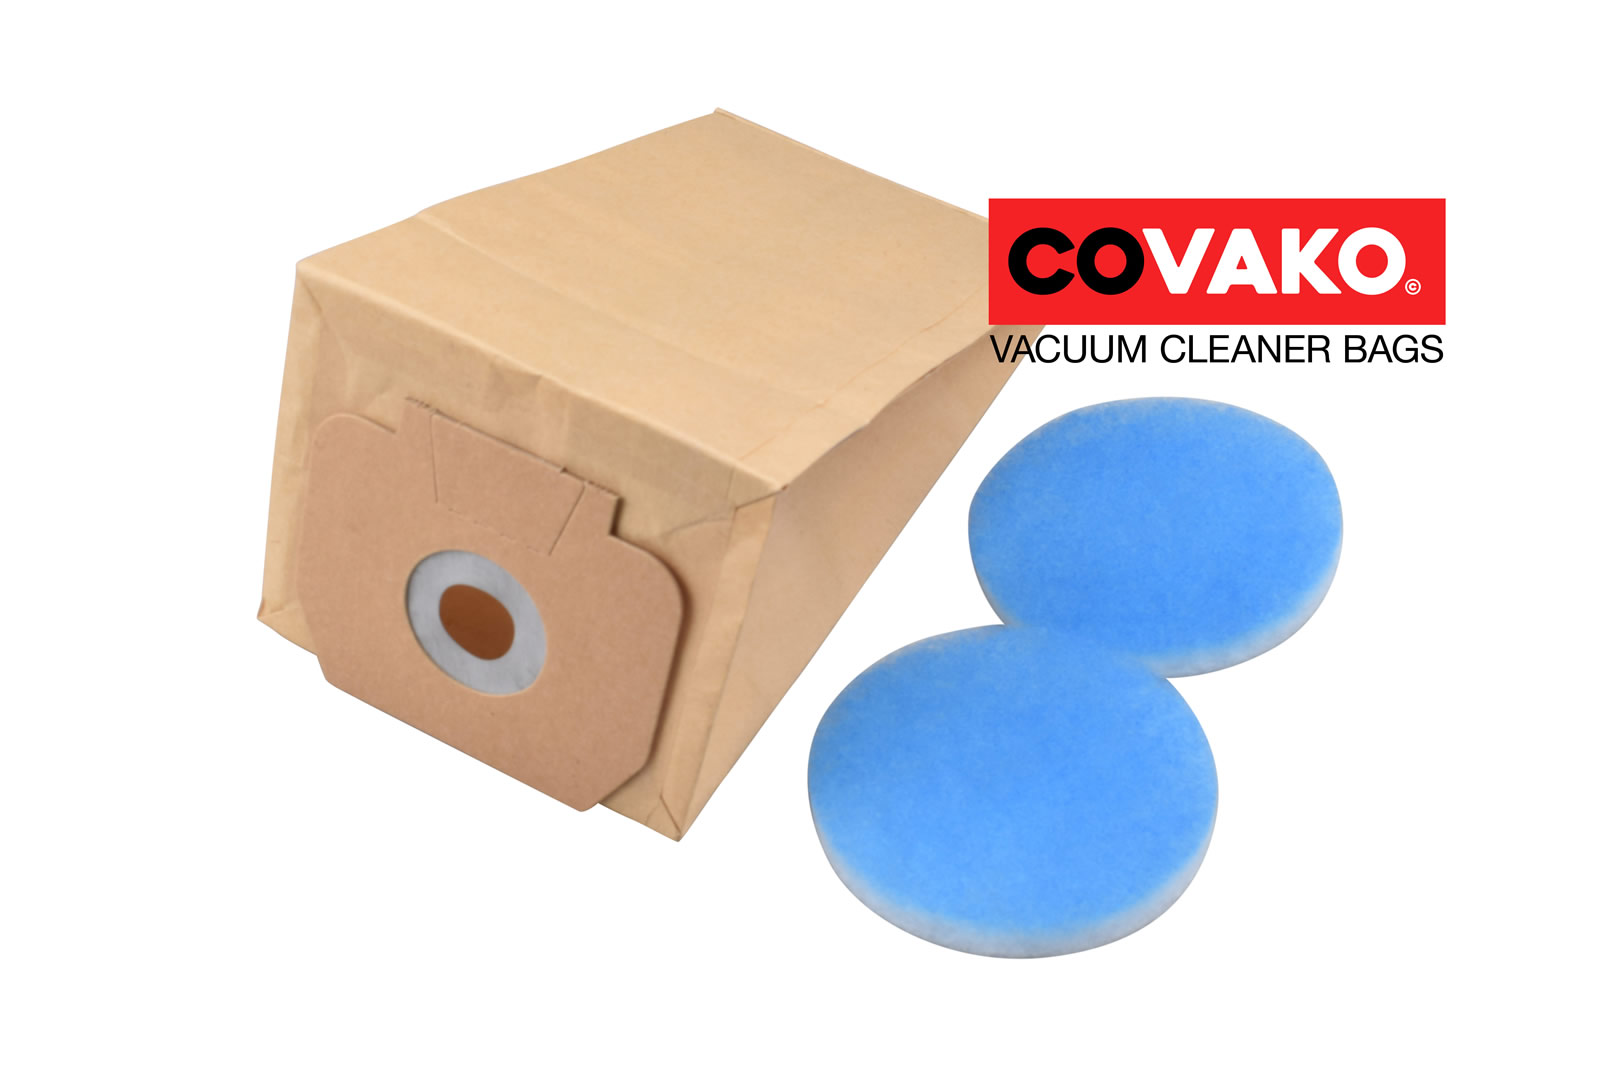 Fast RS 09 / Paper - Fast vacuum cleaner bags